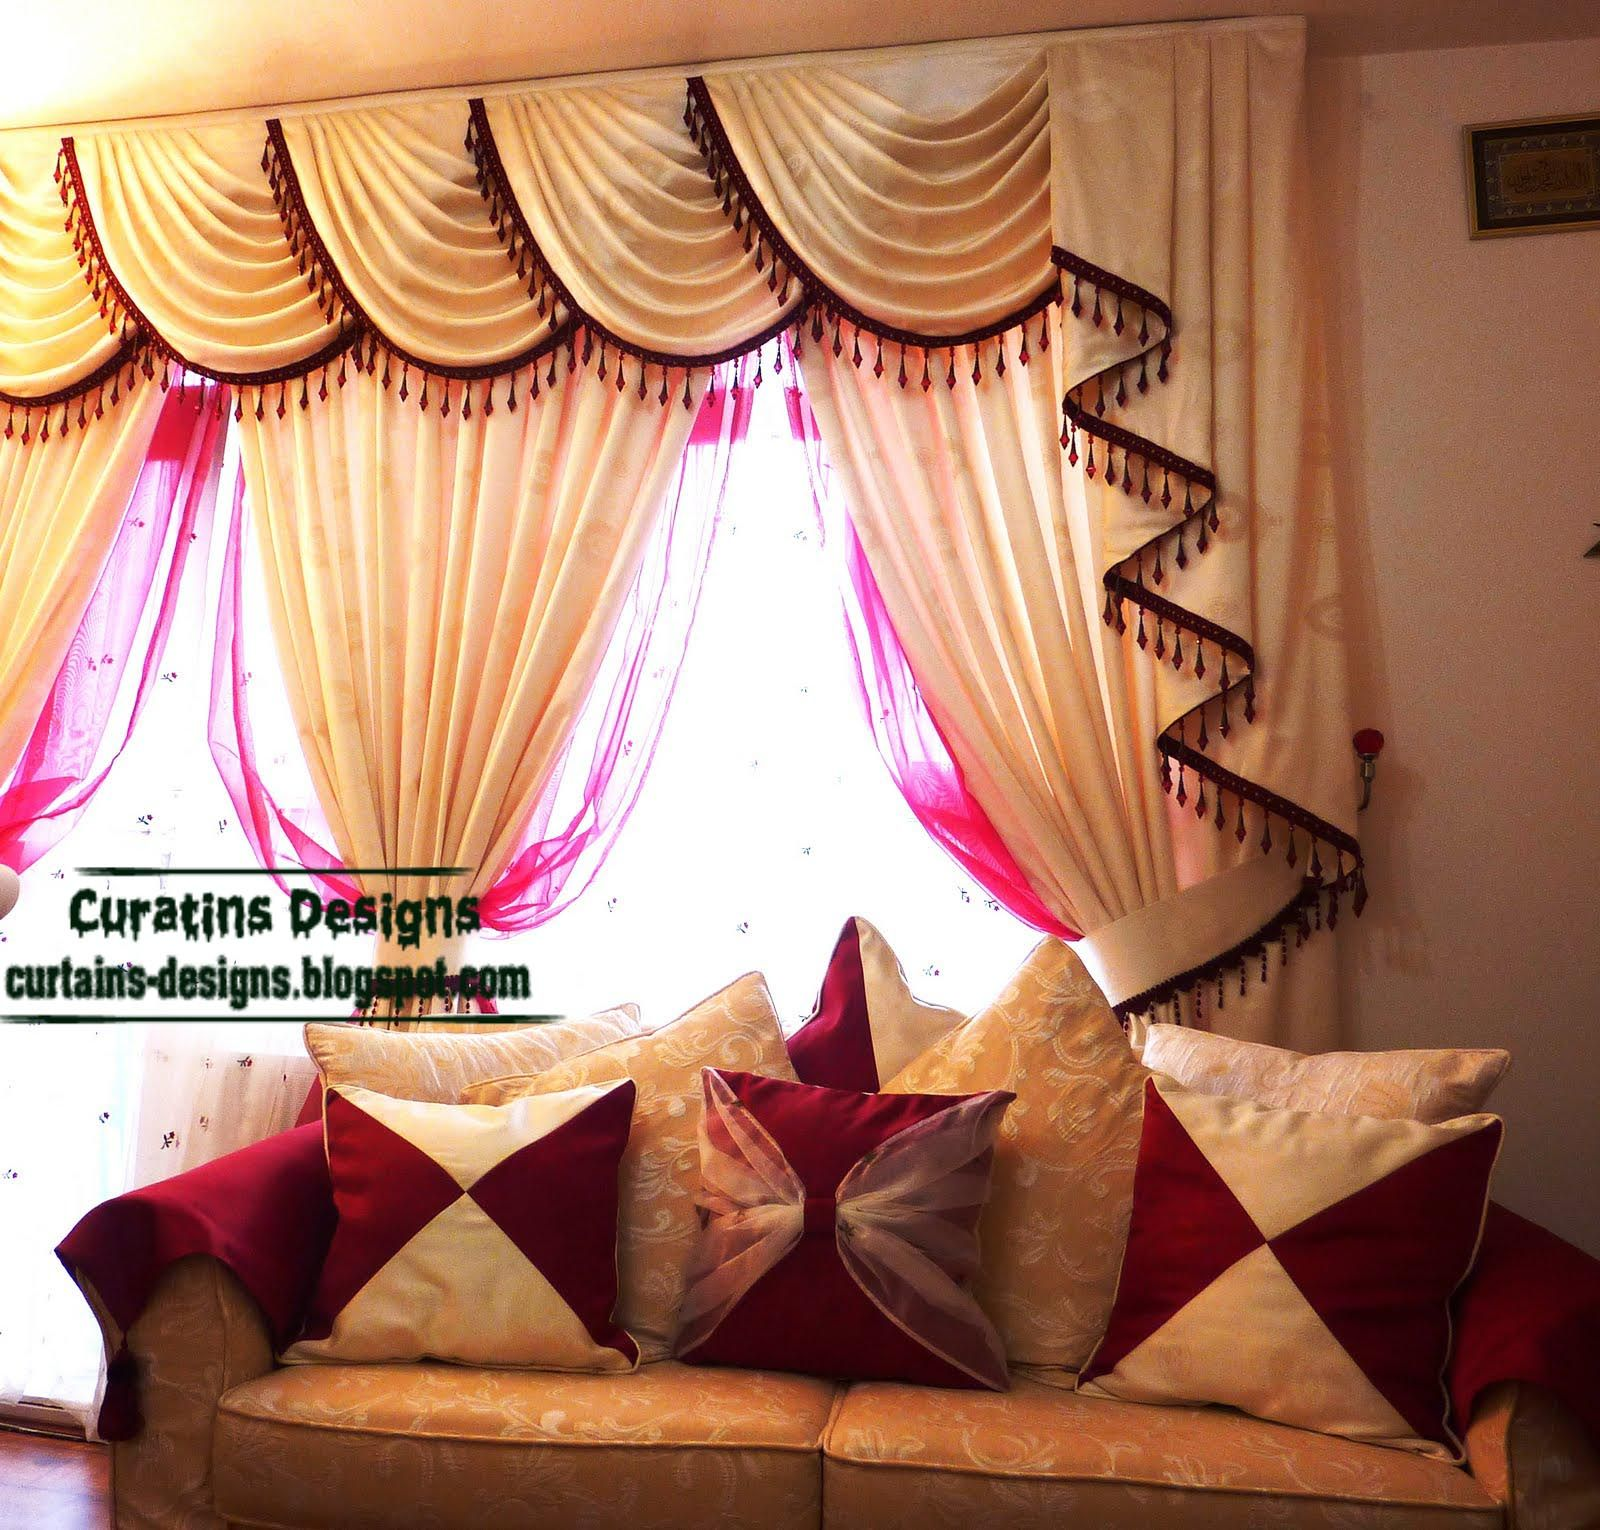 Curtain designs living room - Living Room Curtains Indian Drapes Curtain Design For Living Room Beige